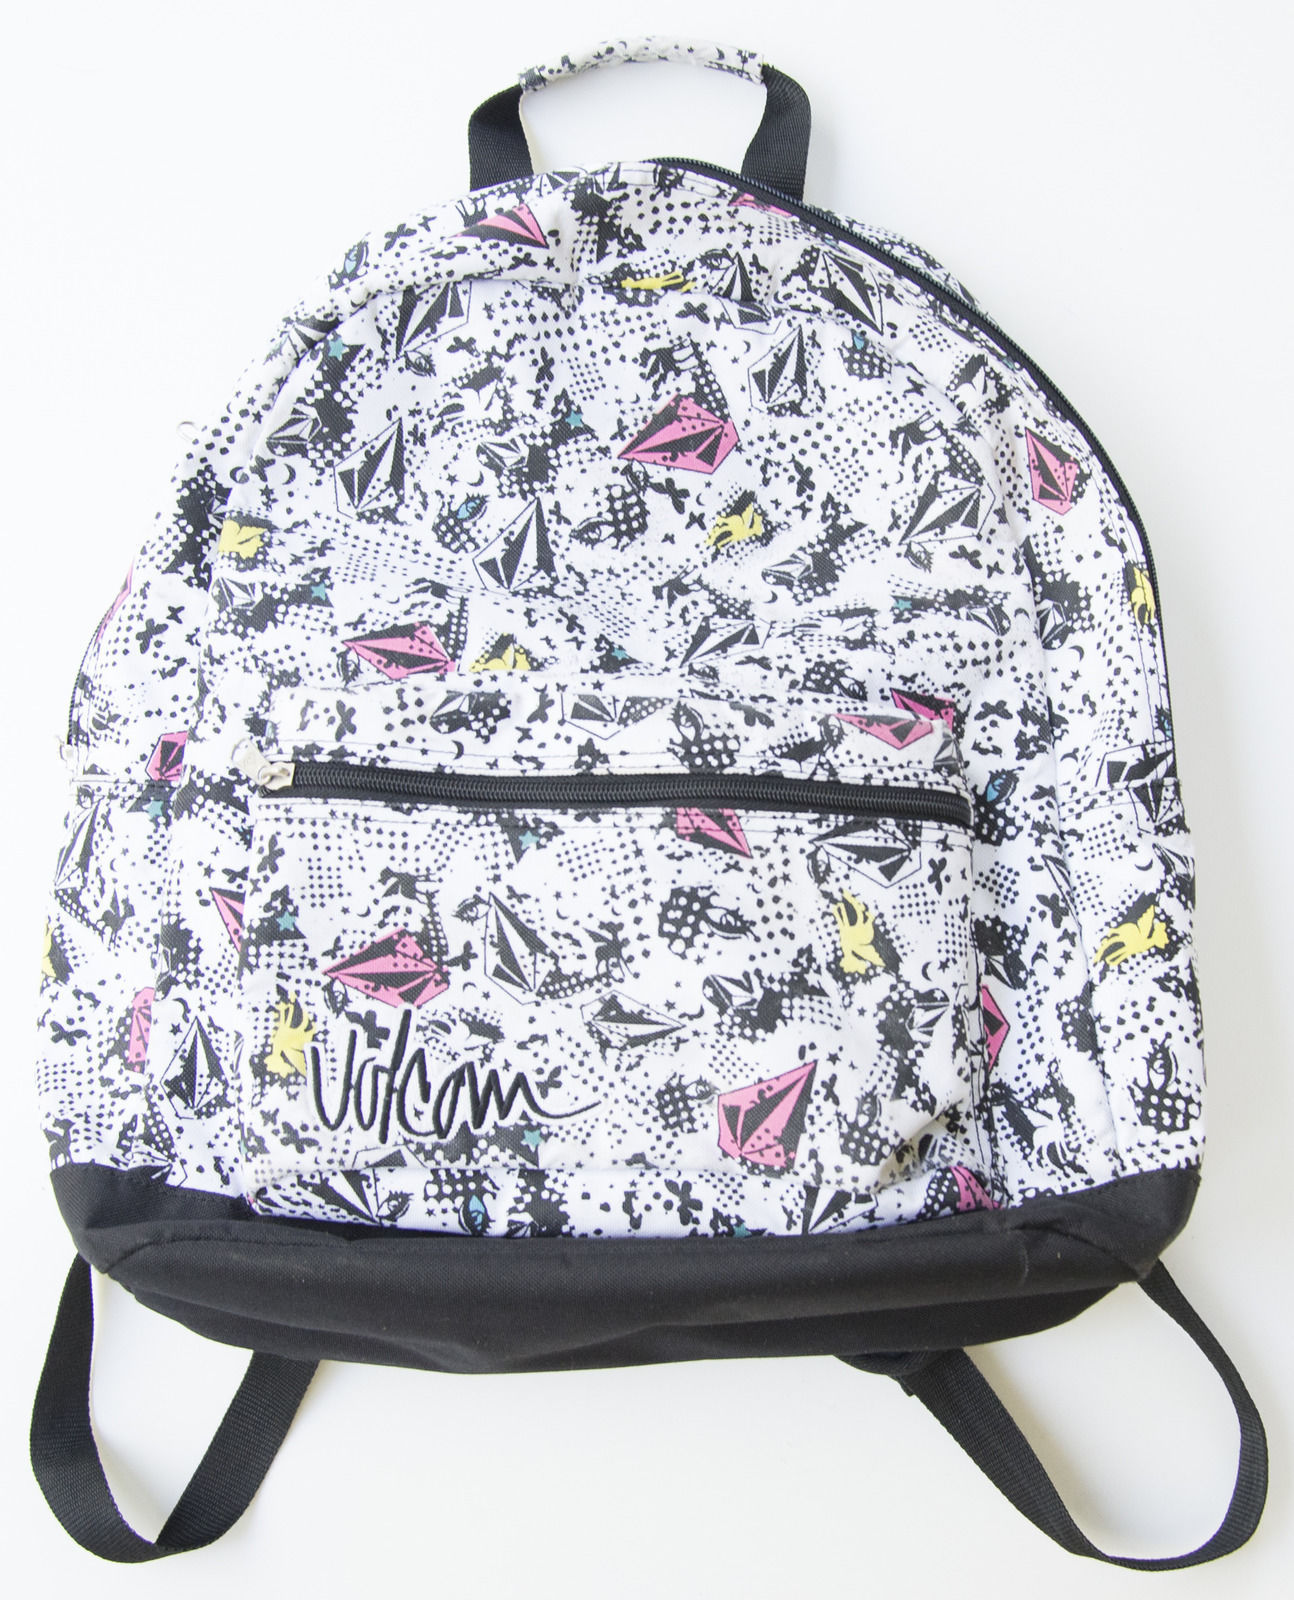 MEN'S WOMEN'S VOLCOM COSMIC FAUN STONE LOGO SCHOOL BACKPACK BAG WHITE NEW $45